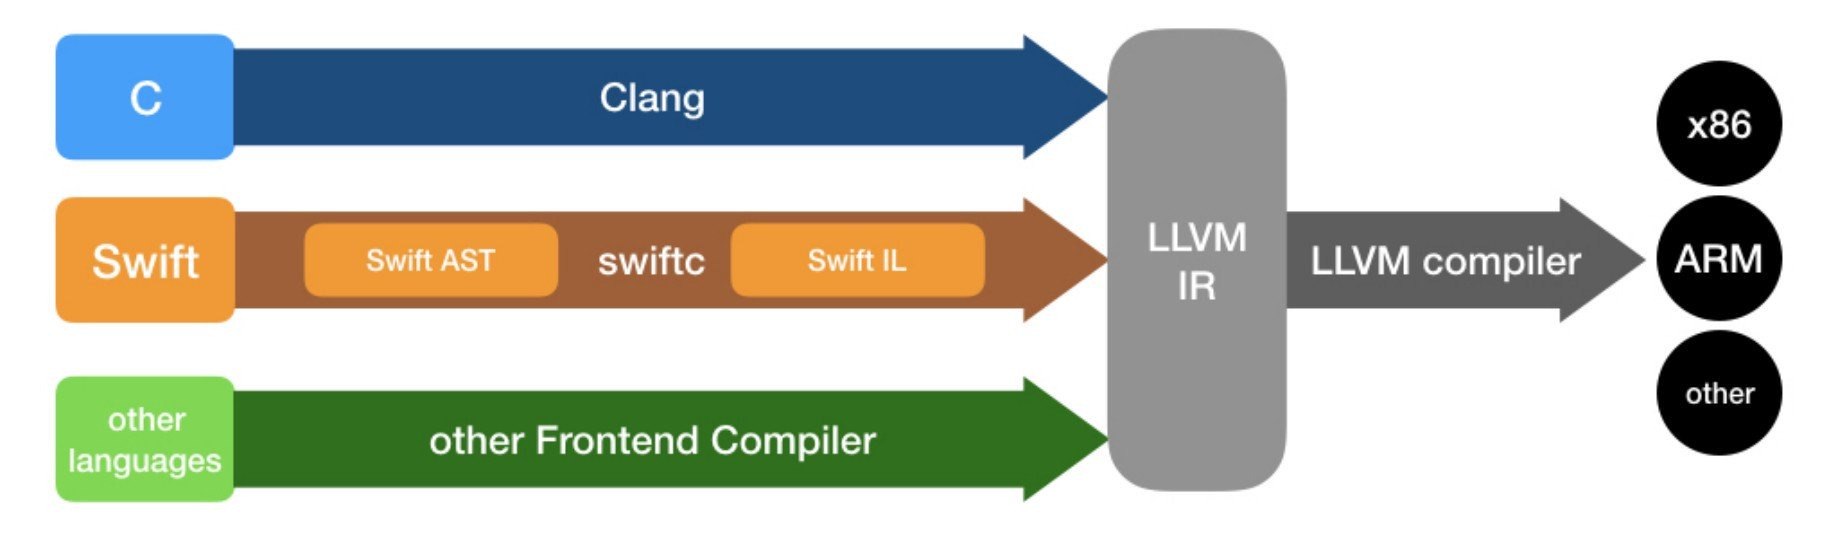 Diagram depicting LLVM (low level virtual machine) being used as a collection of modular and reusable compiler and toolchain technologies for data.